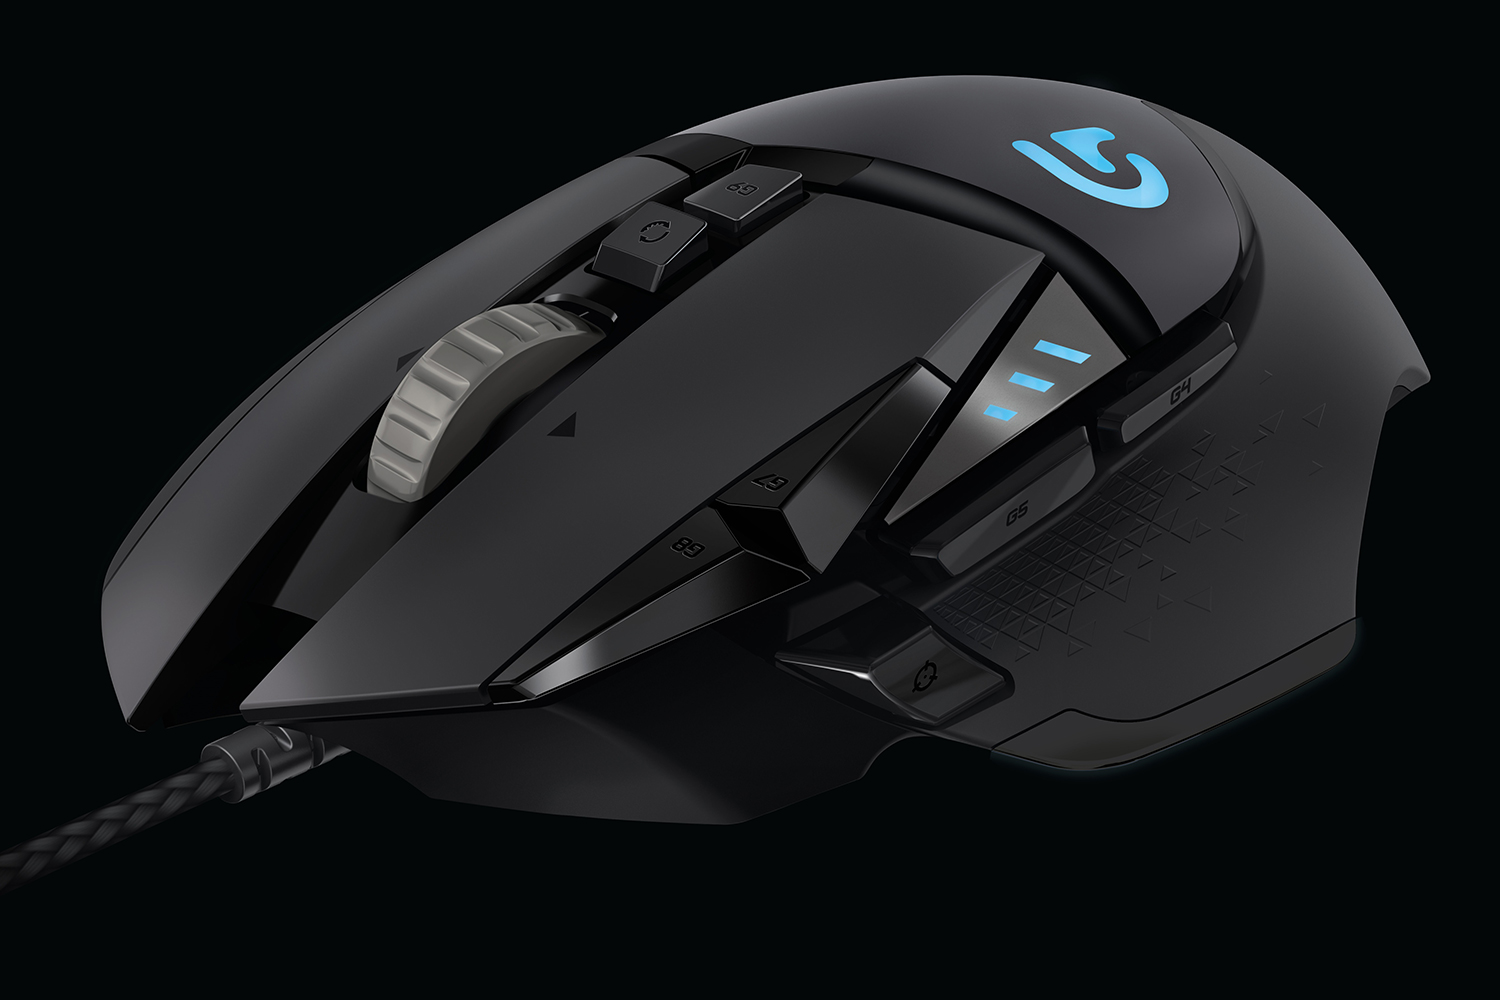 logitech splashes some color on the otherwise serious g502